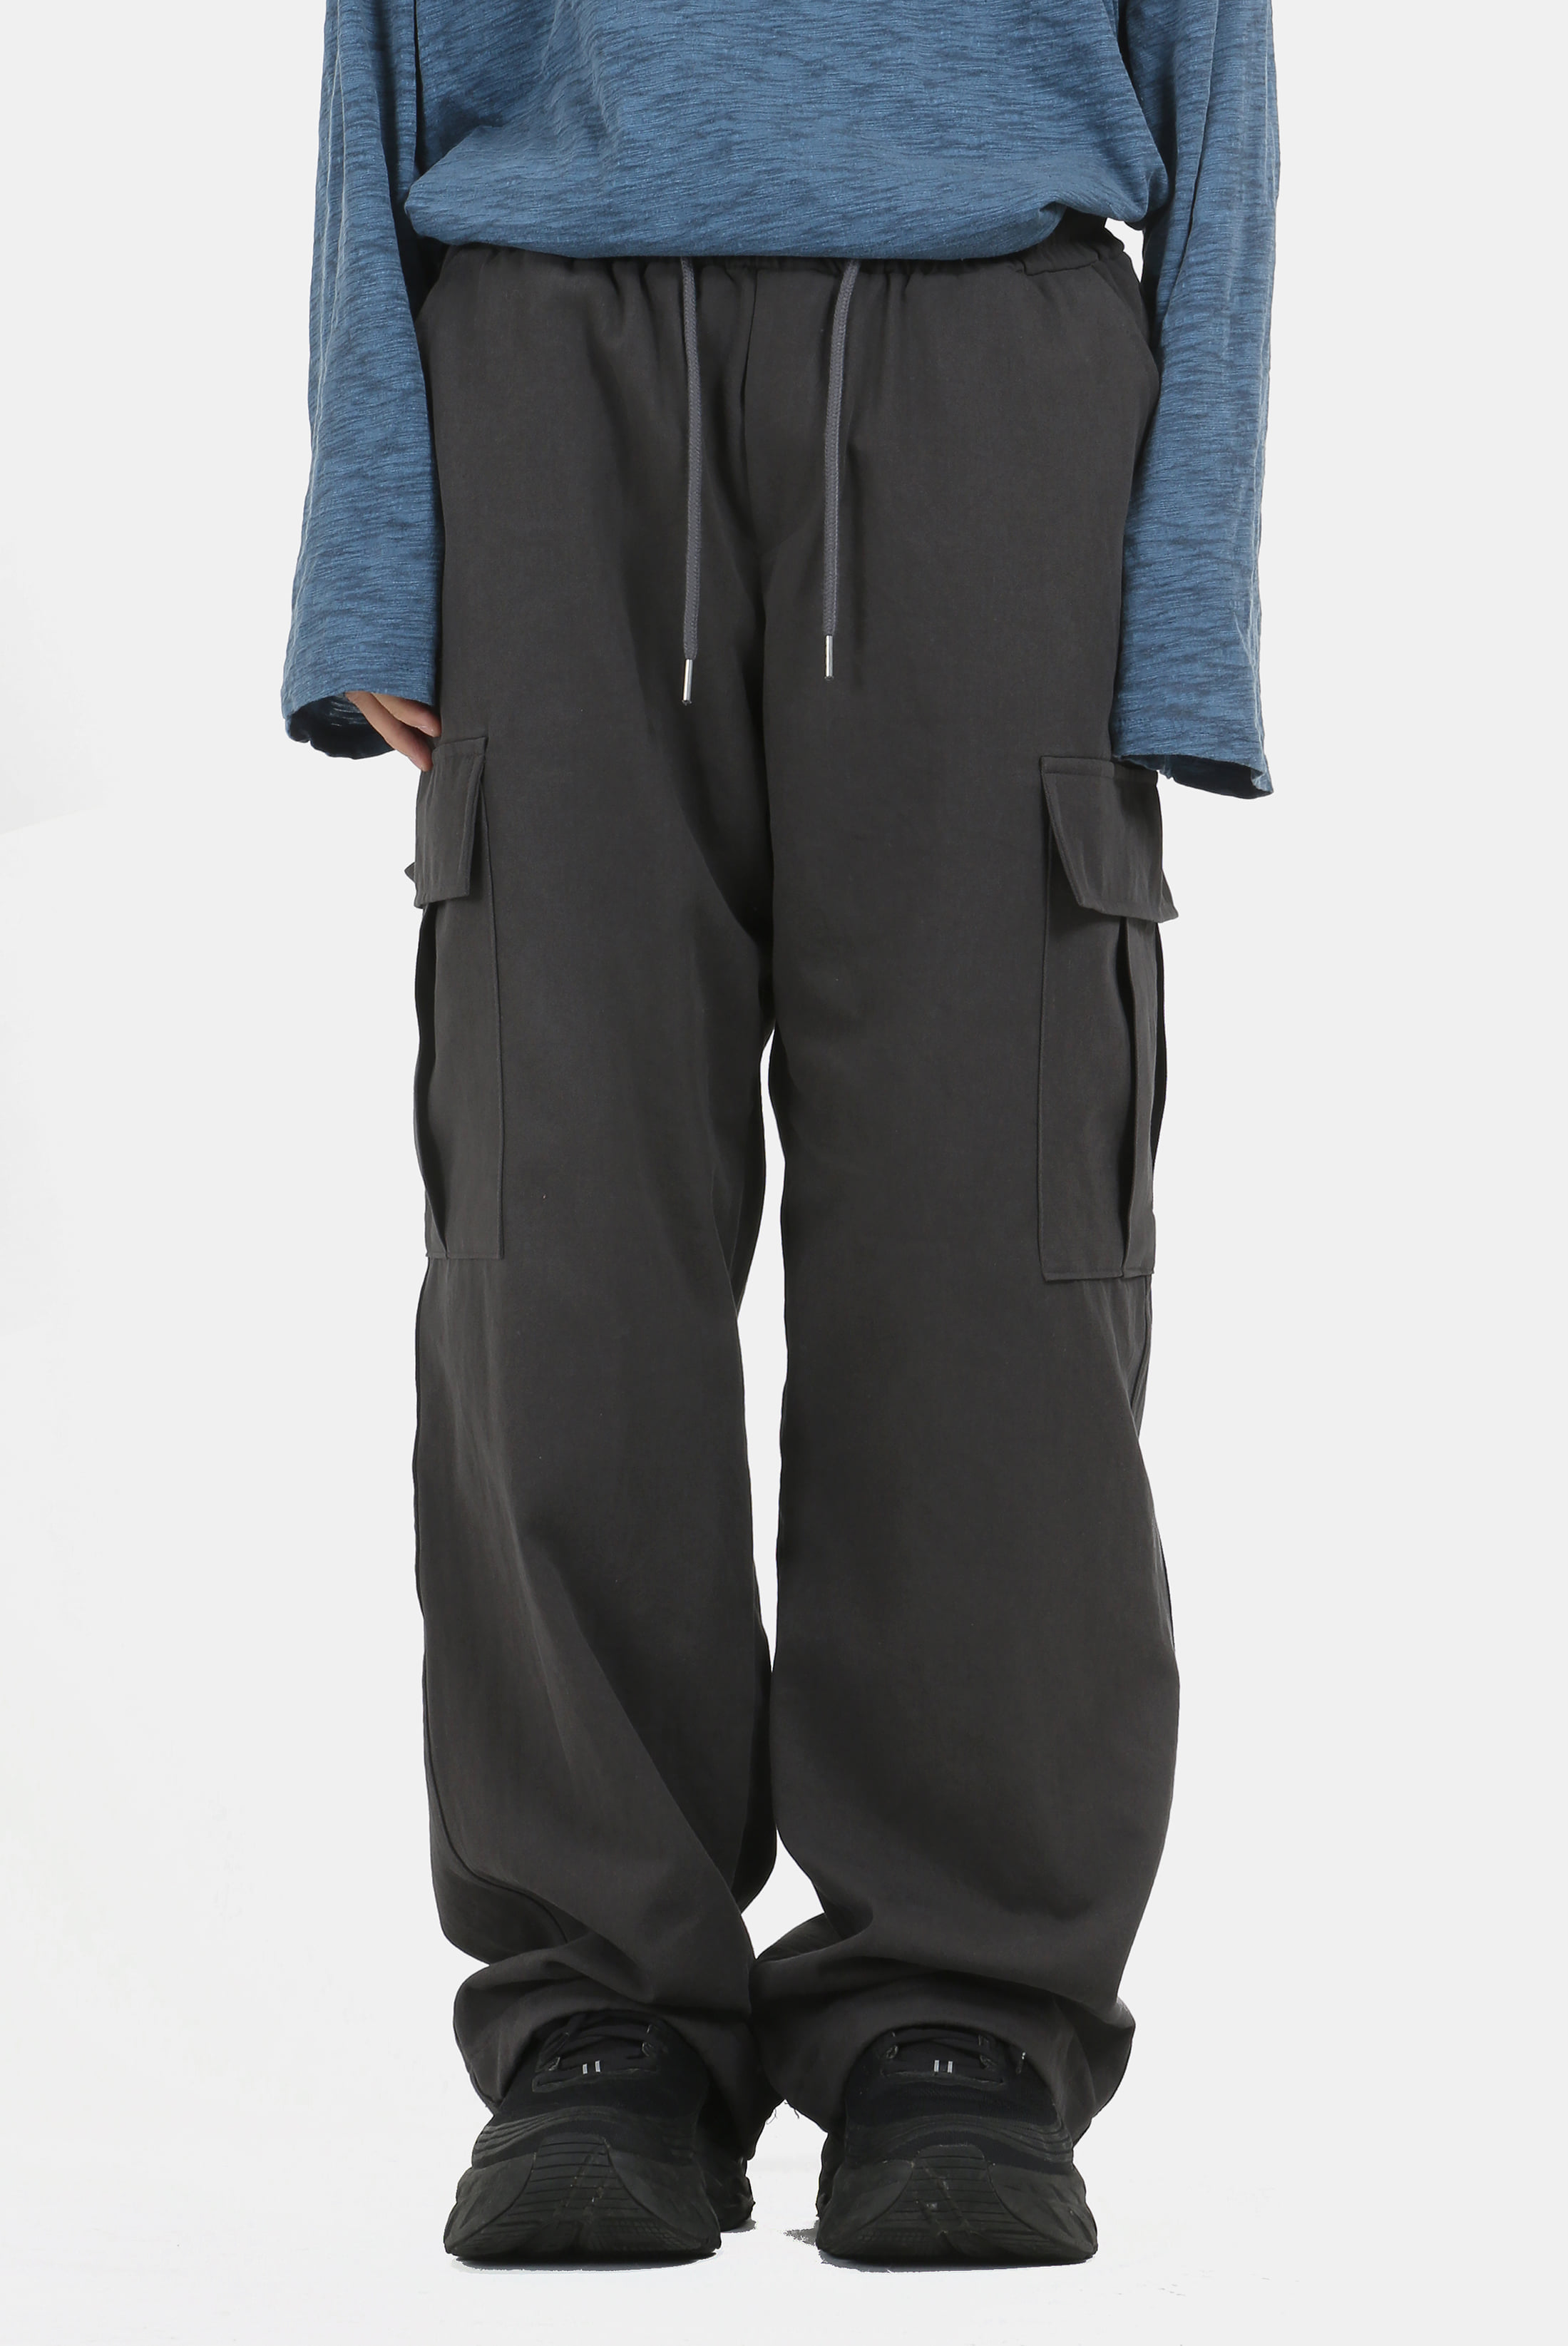 Wide_String Cotton Cargo_Pants